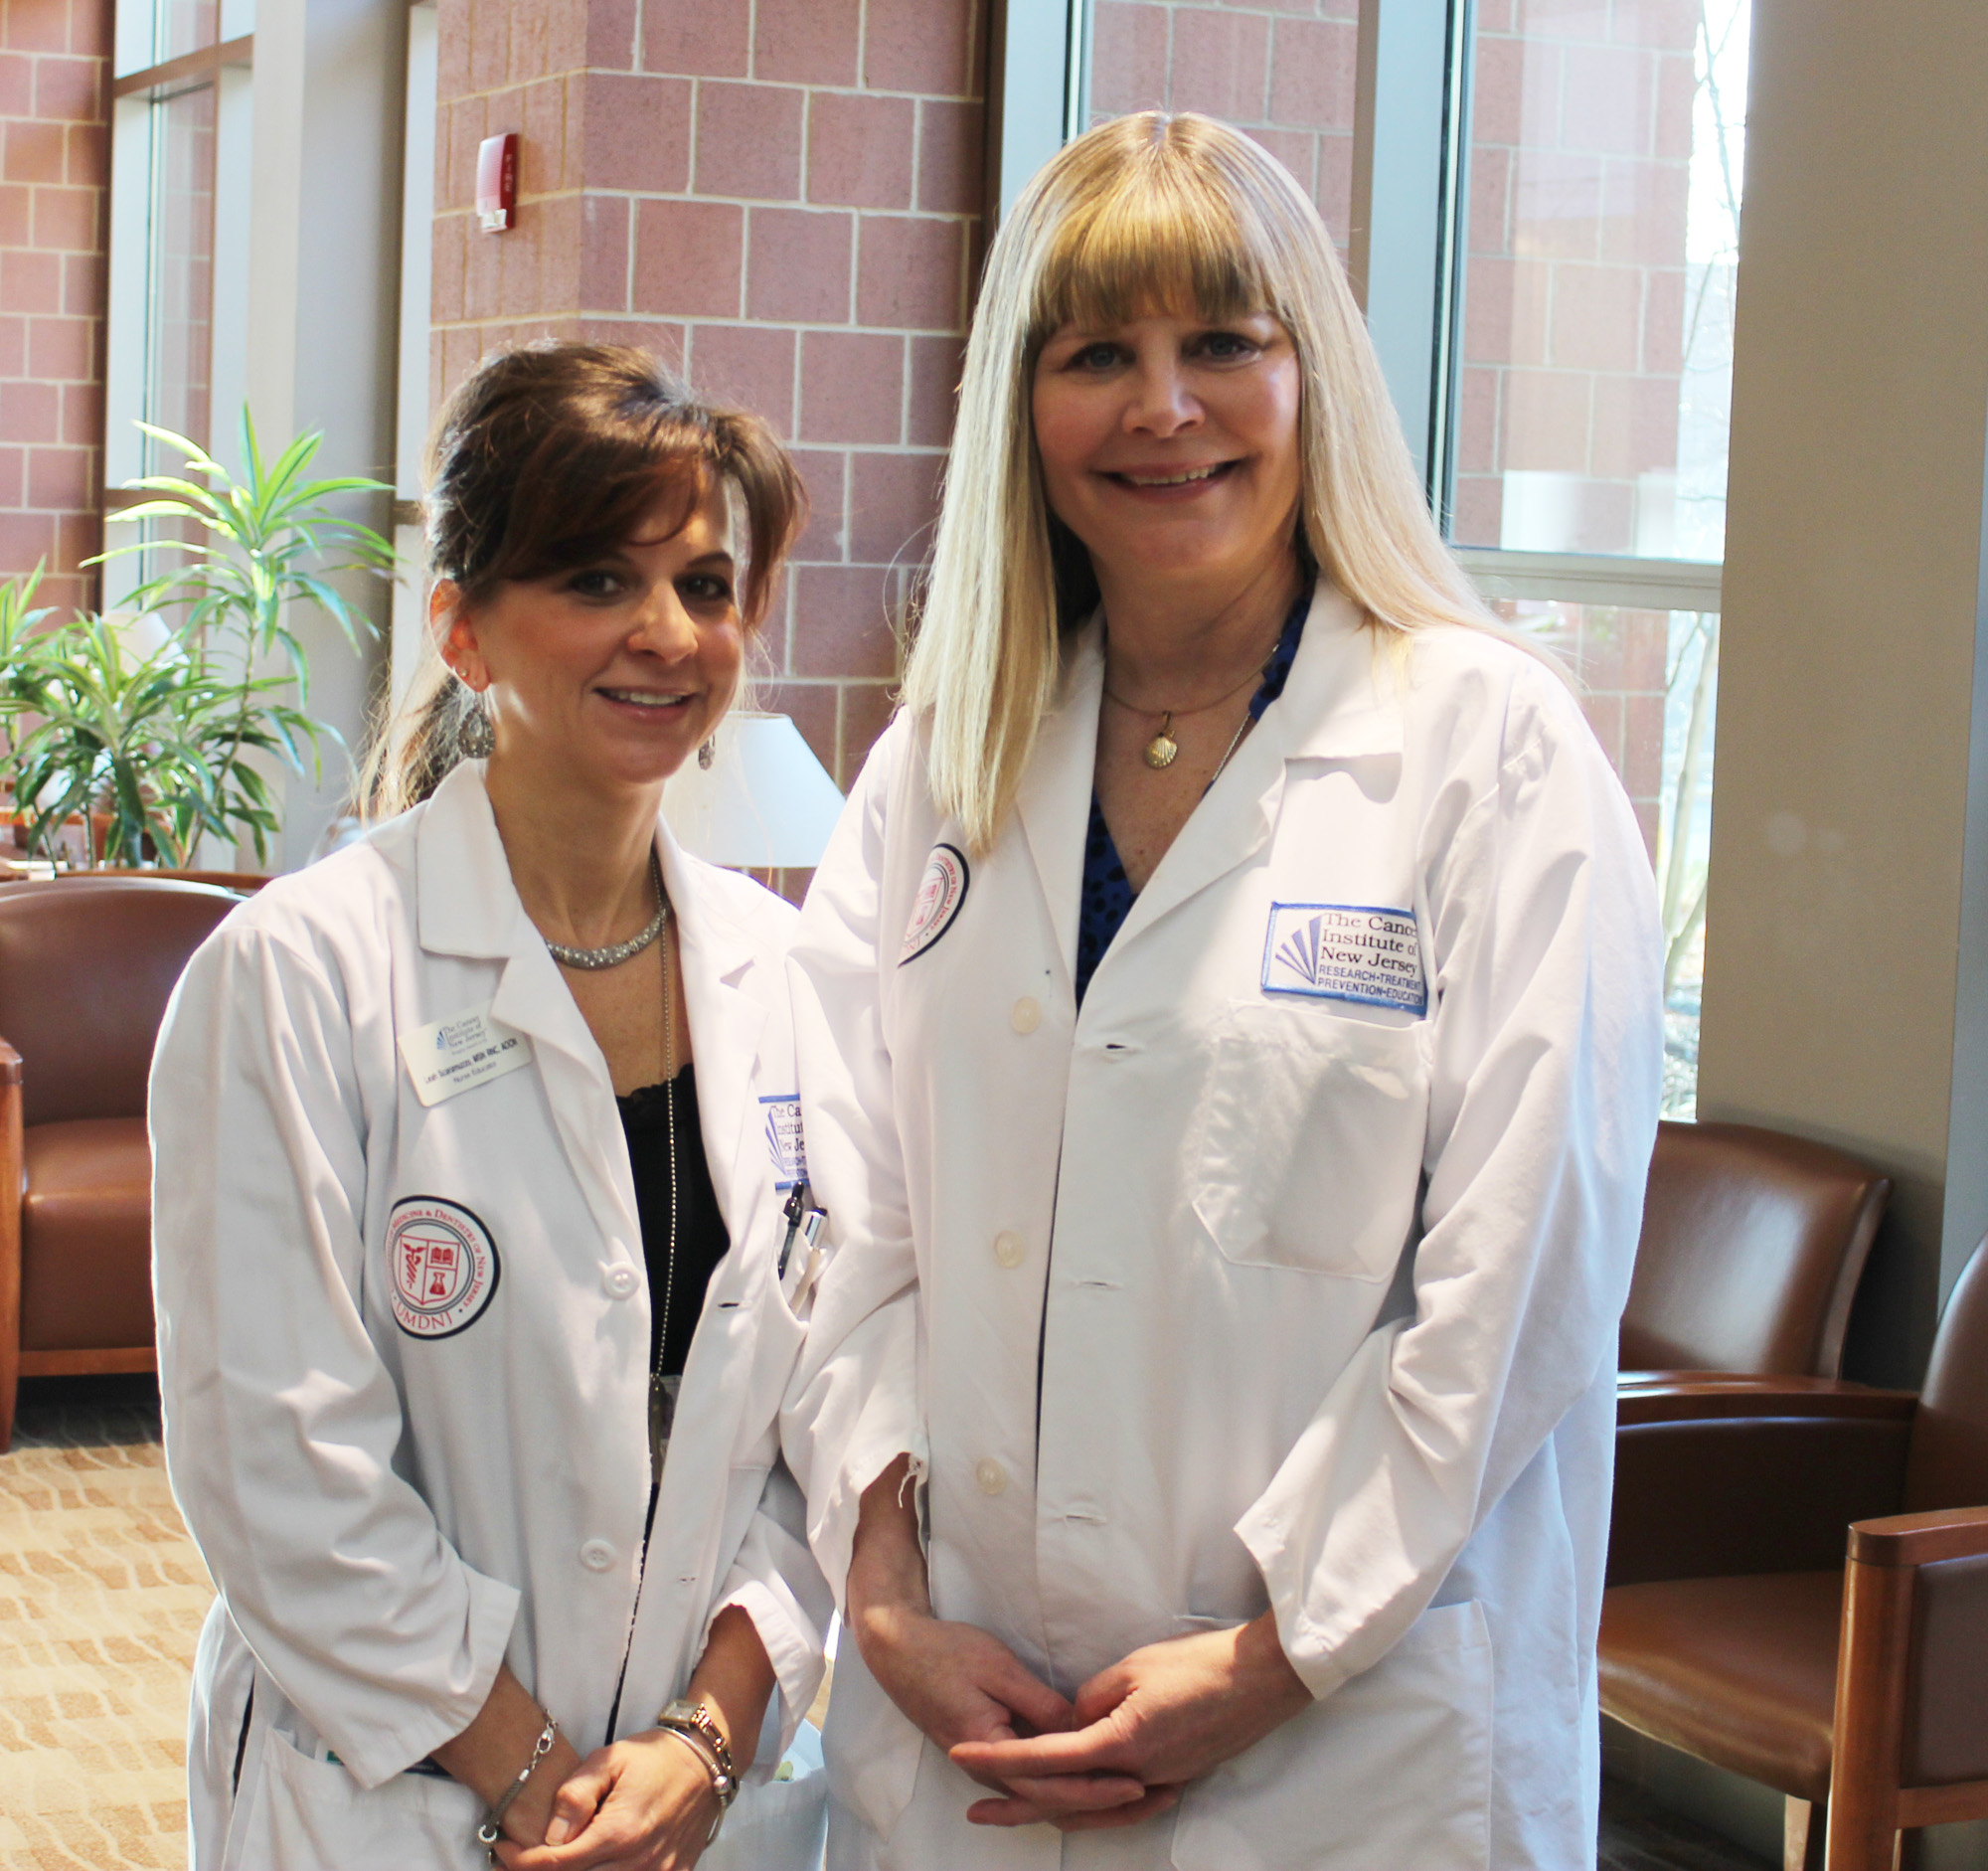 nurses at the cancer institute of new jersey explore